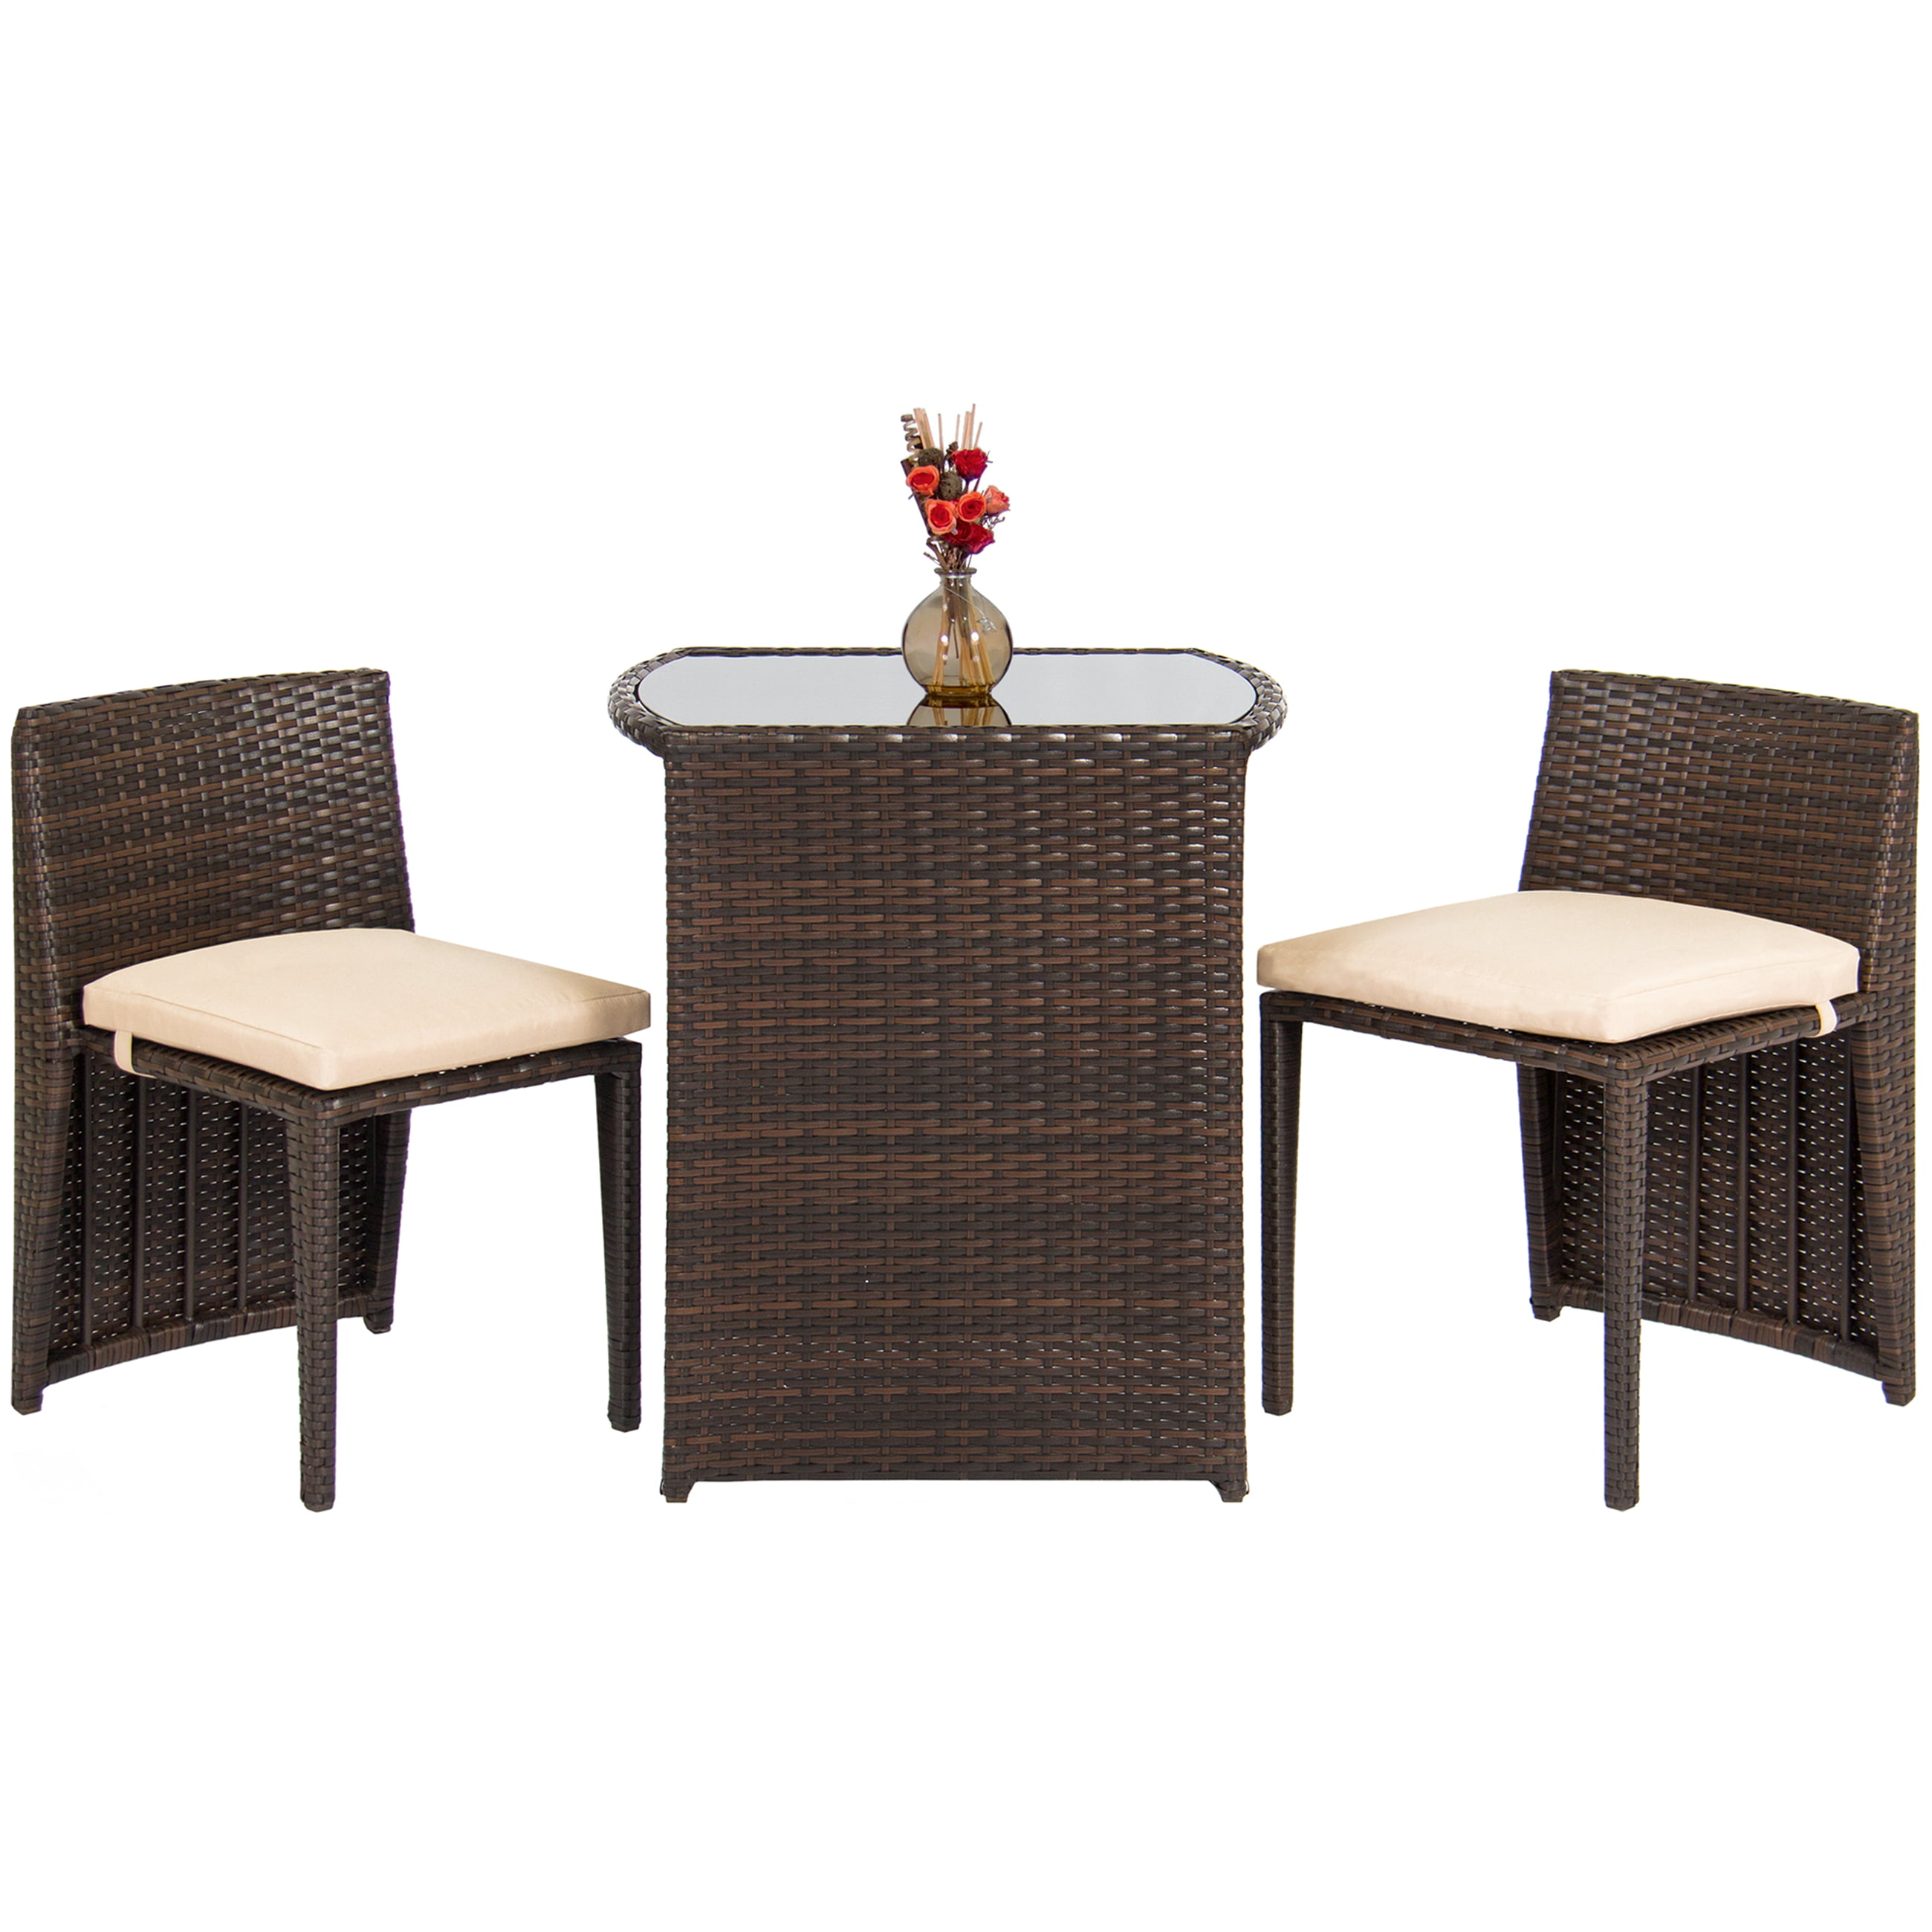 Delicieux Best Choice Products Wicker 3 Piece Space Saving Outdoor Bistro Set With  Glass Table Top   Walmart.com